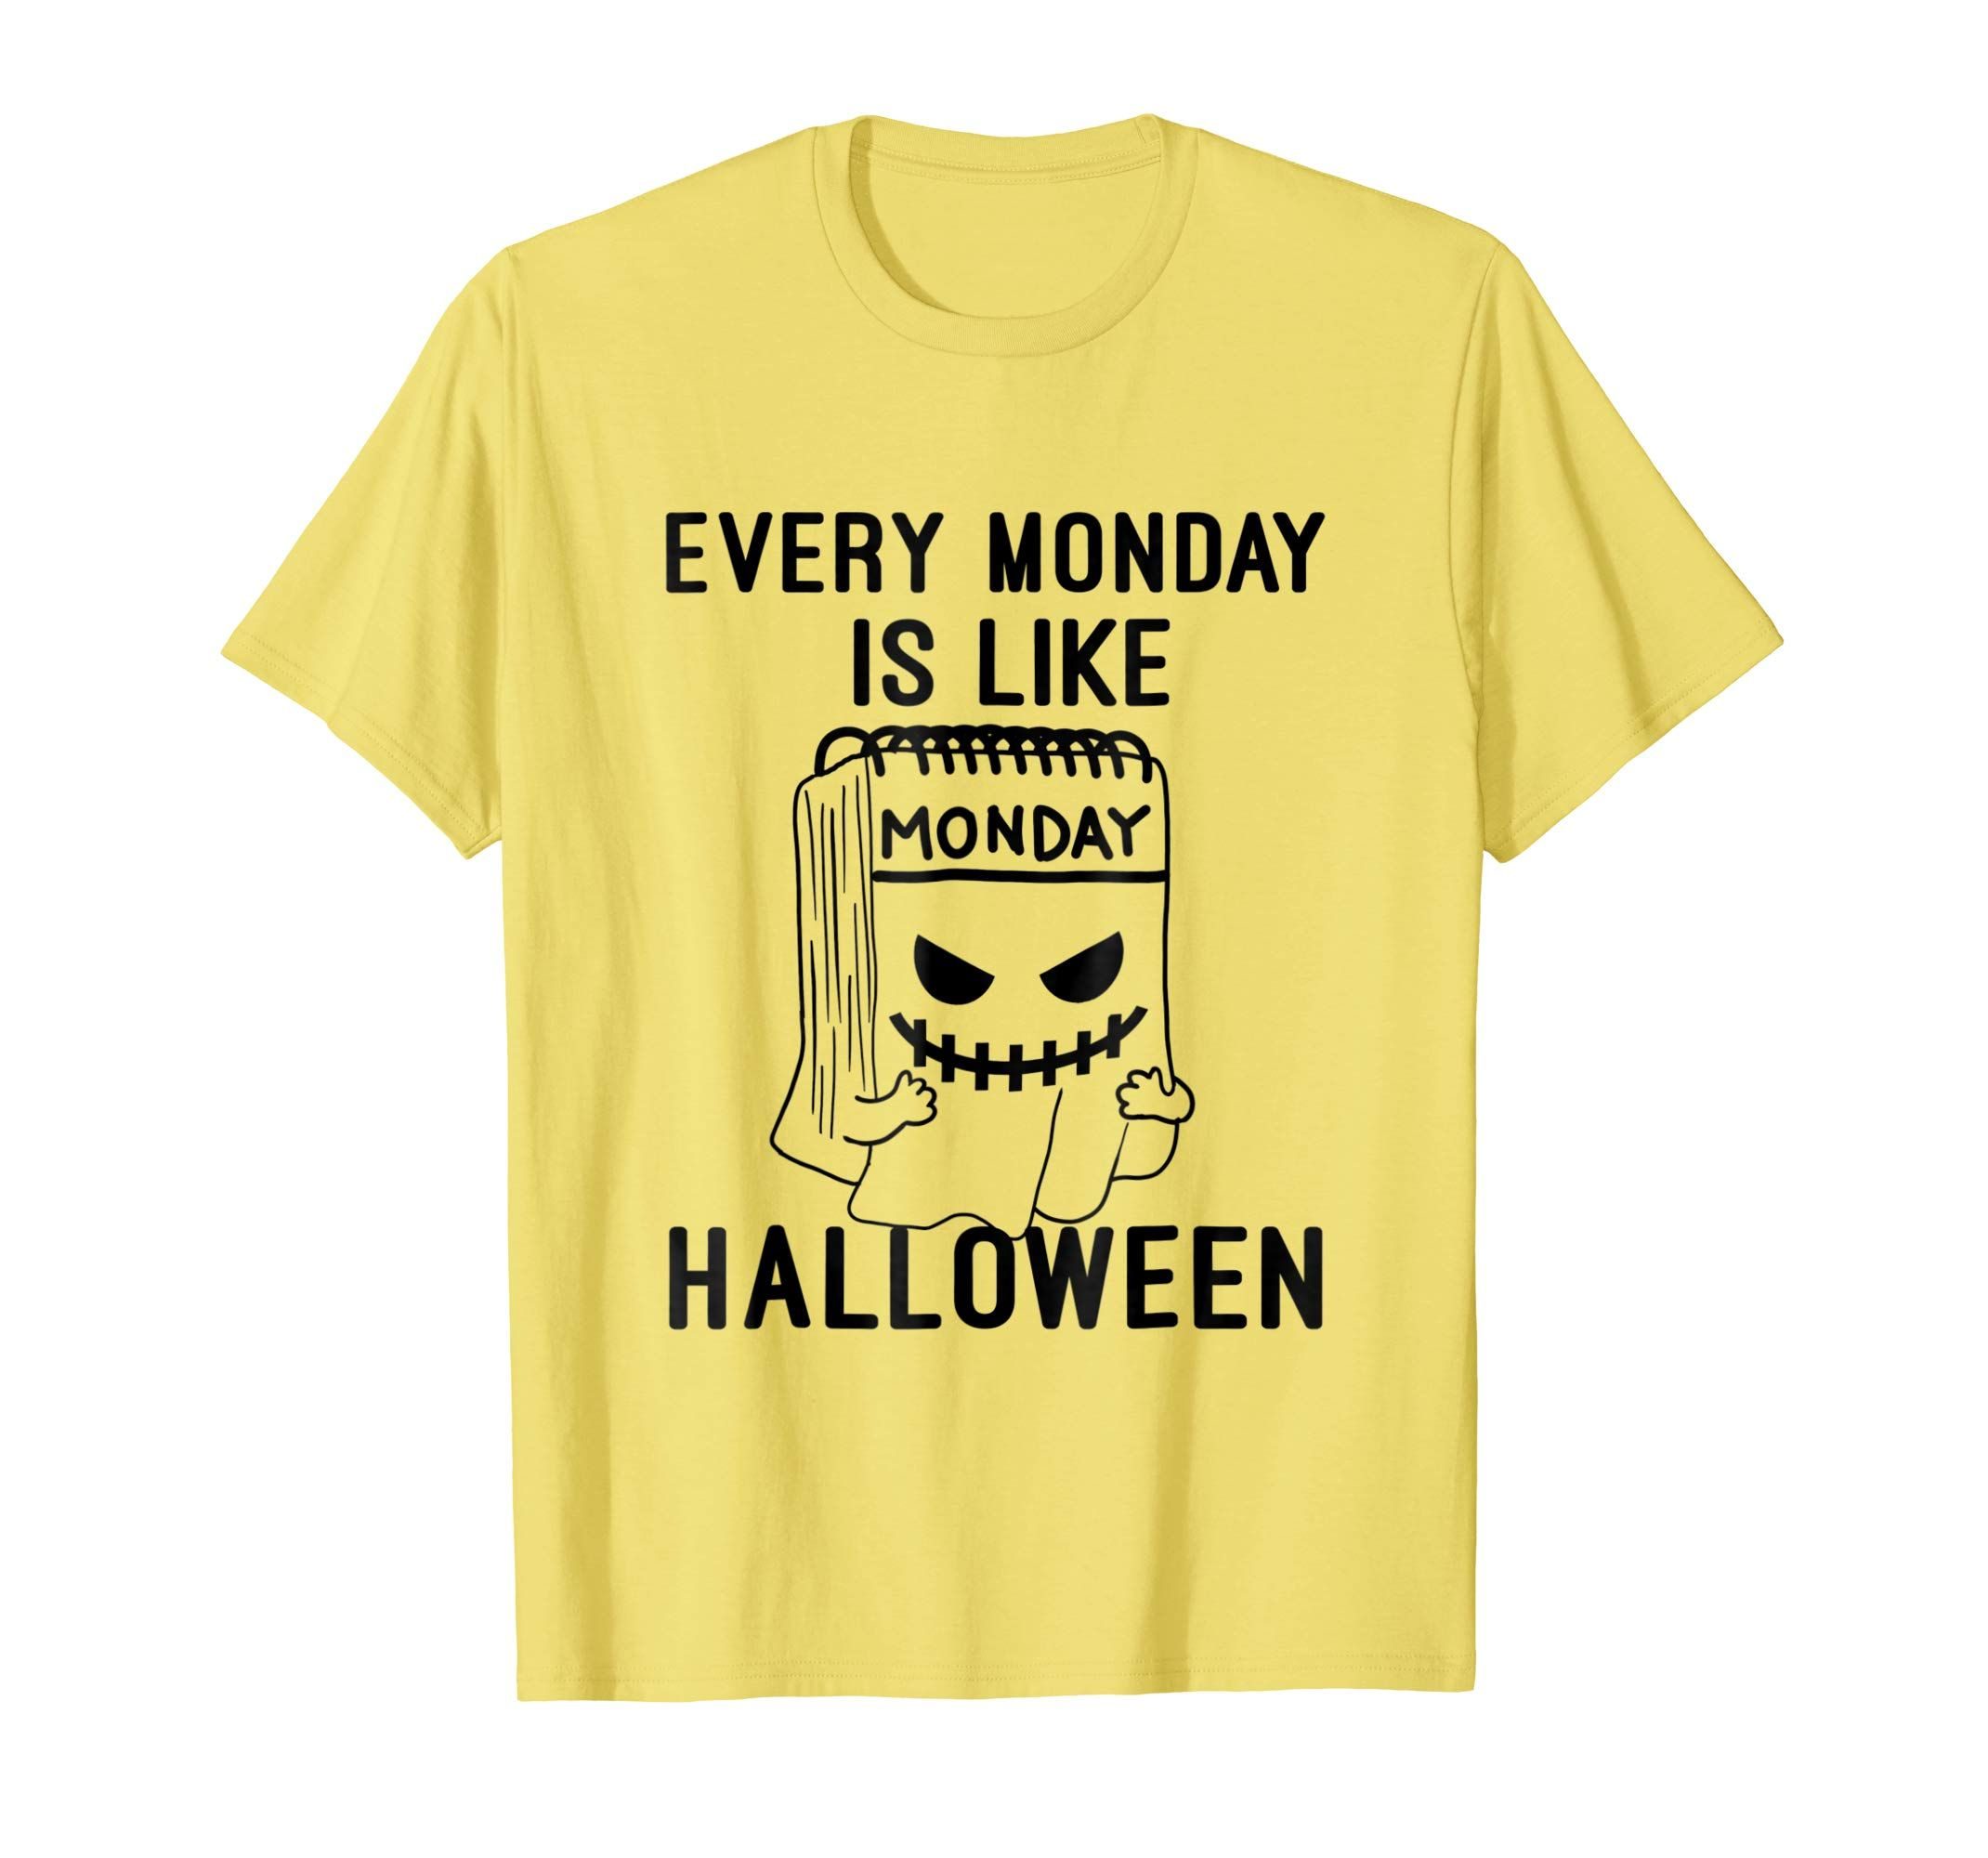 ad747707 Hate Monday Morning Calendar Halloween Tee Ghost Funny Gift   Happy ...